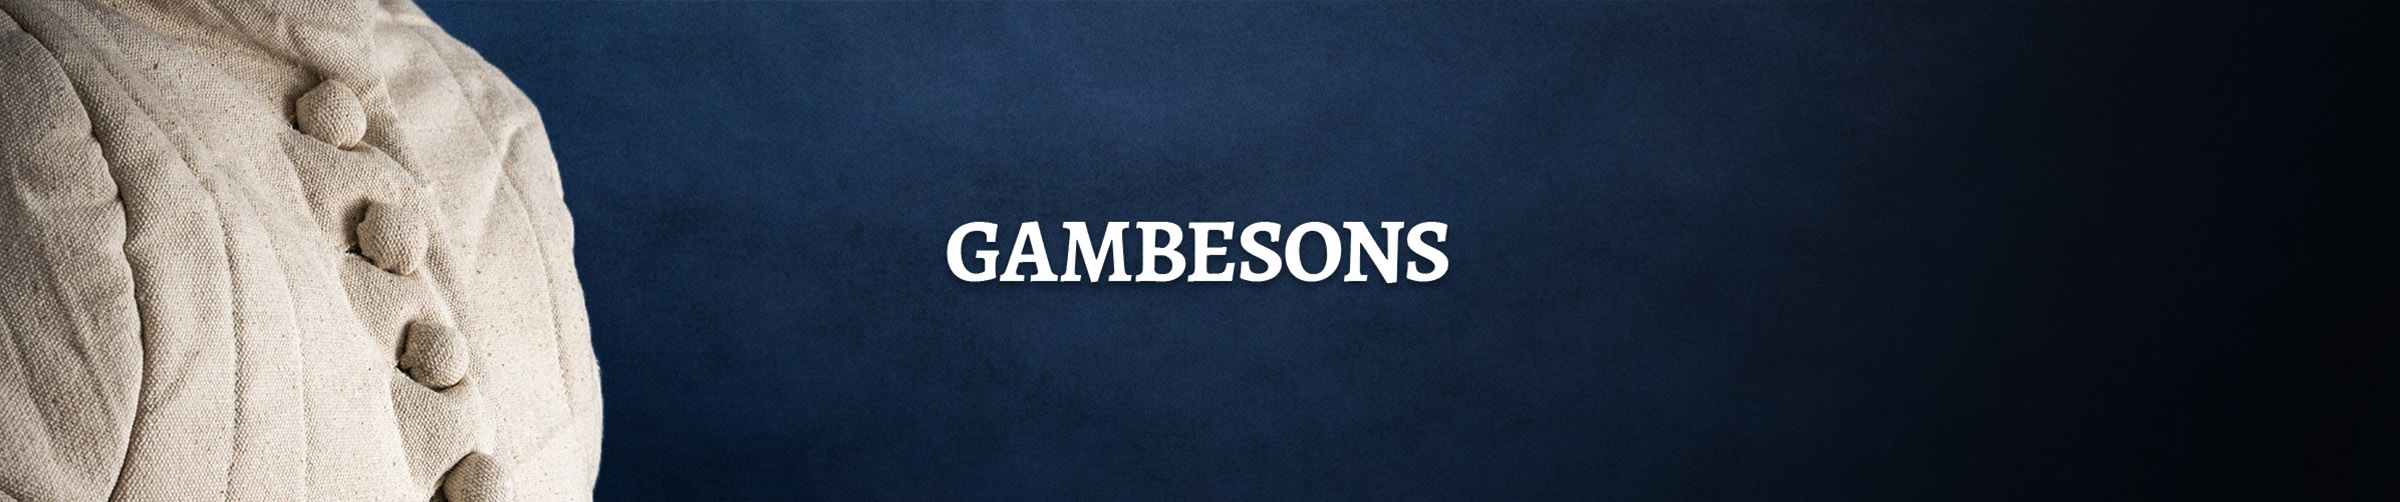 Gambesons